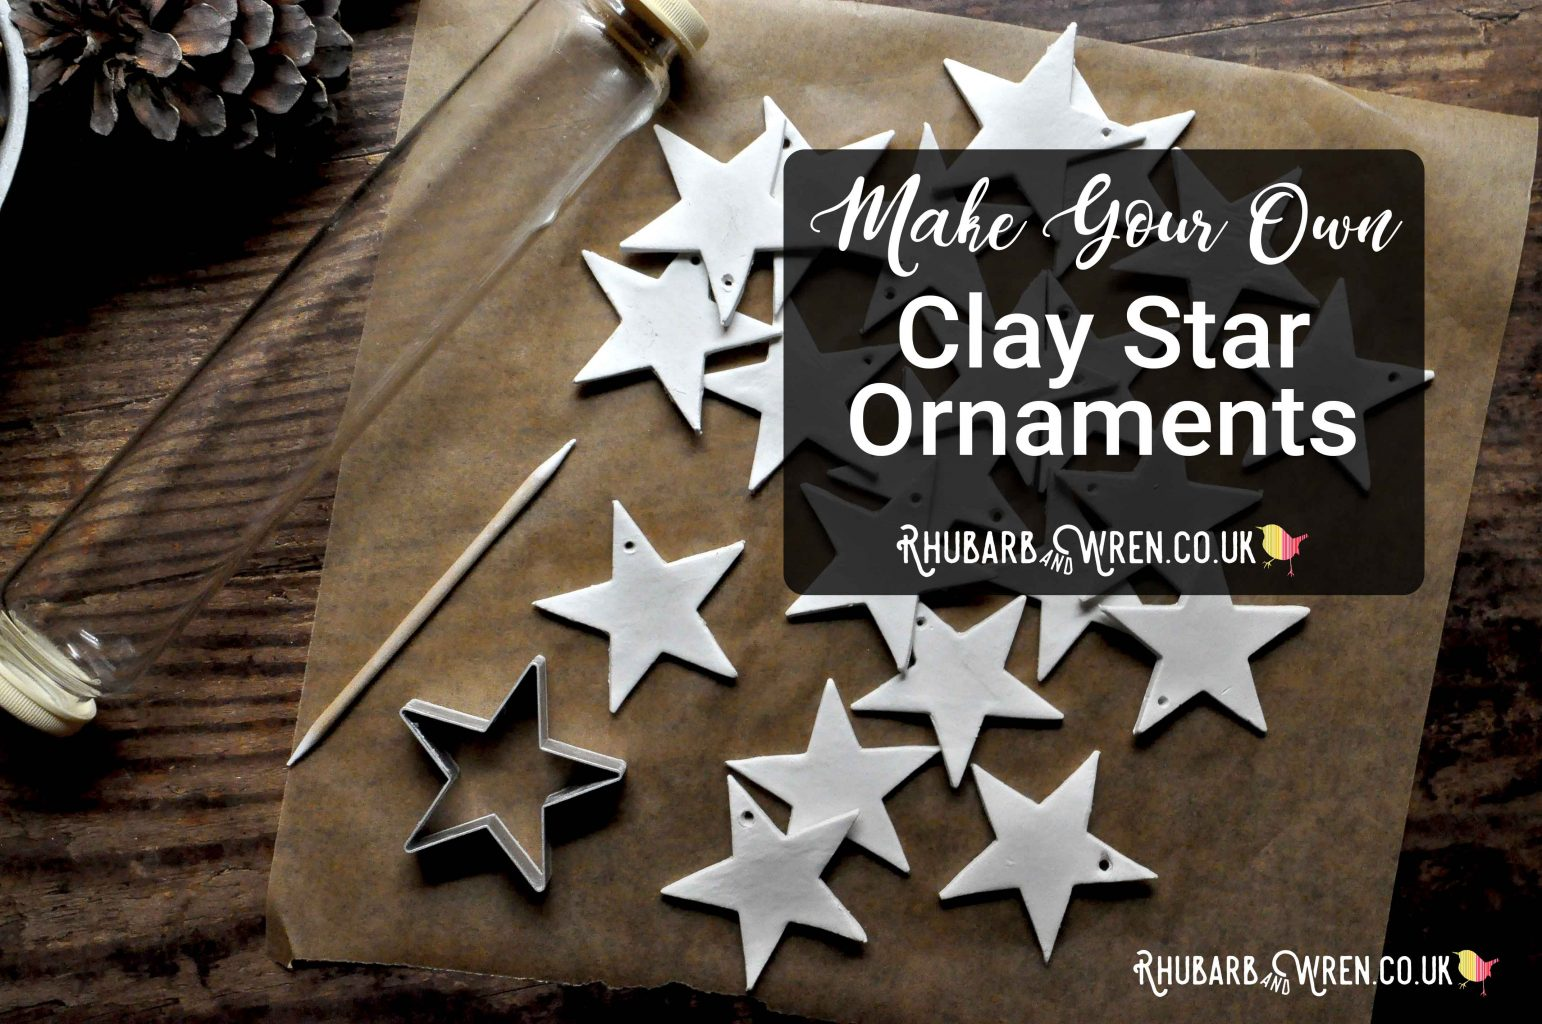 Make your own clay star ornaments for Christmas decorations